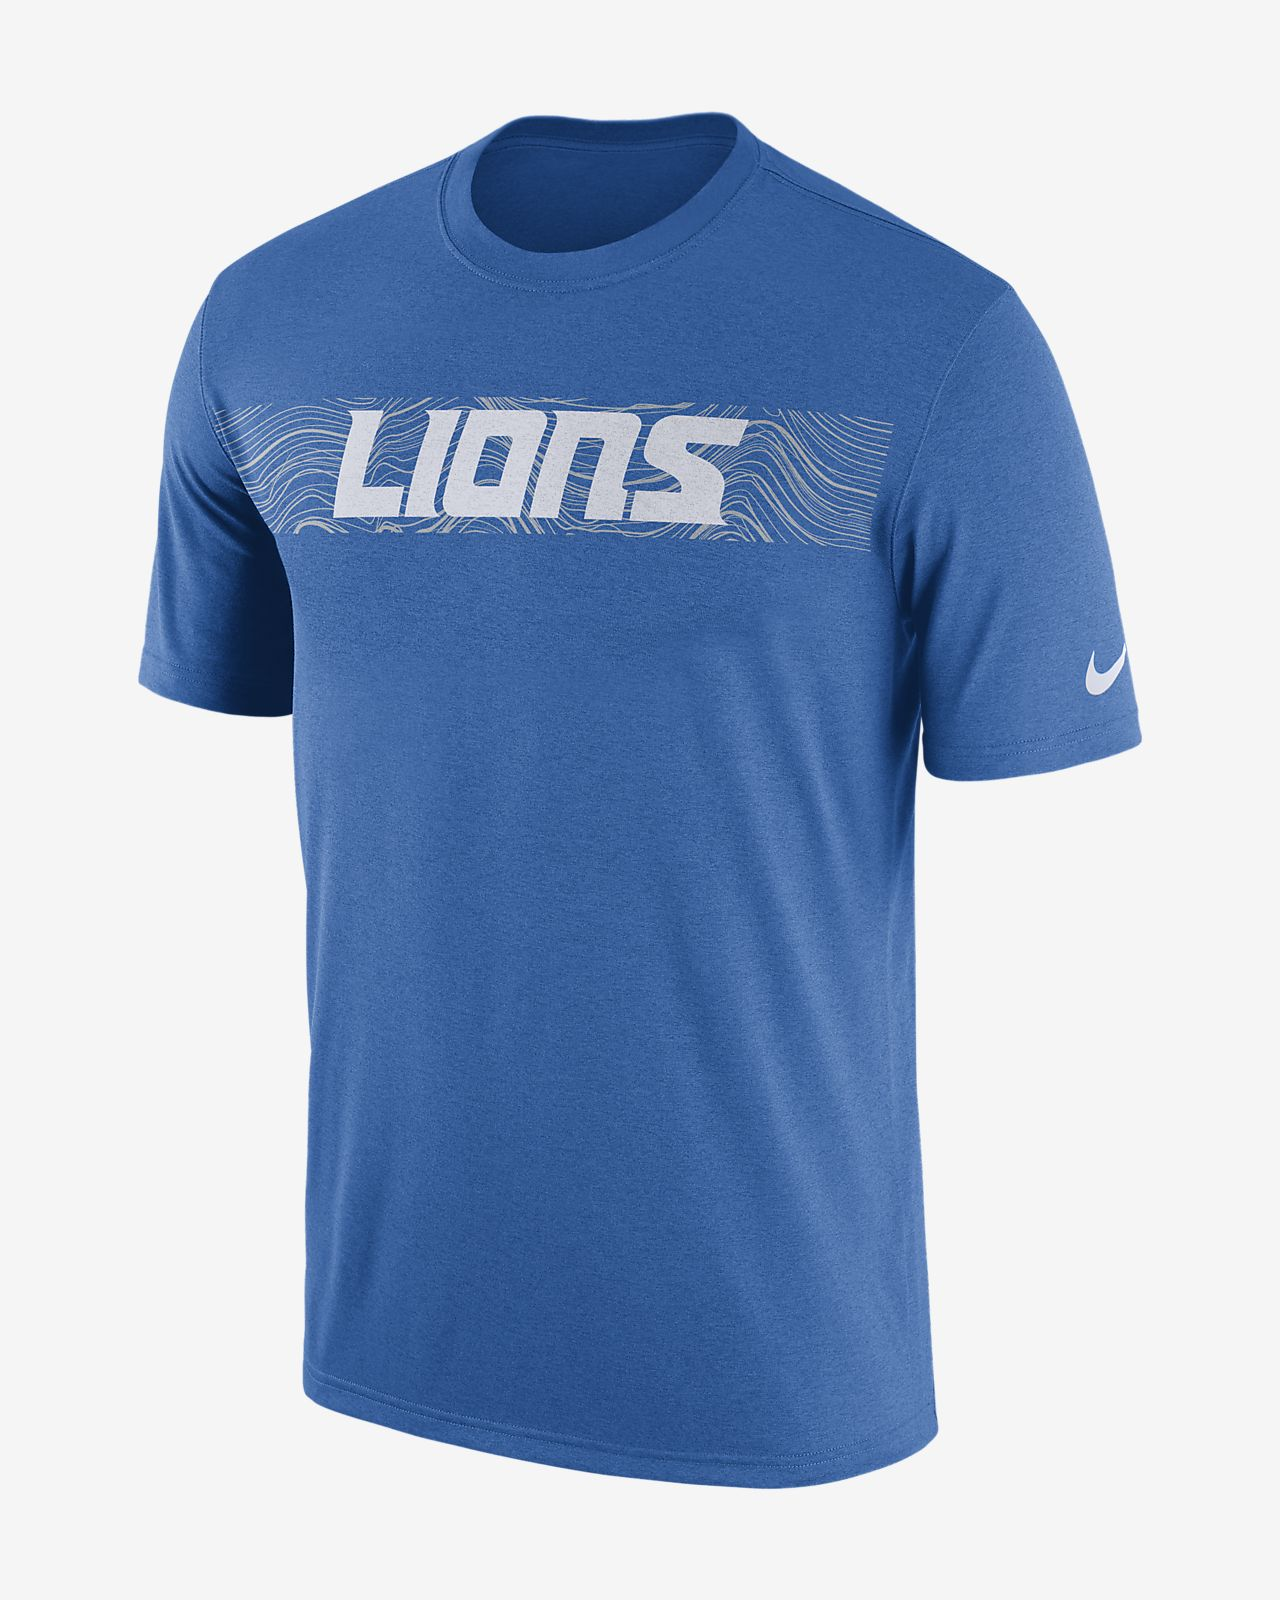 Nike Dri-FIT Legend Seismic (NFL Lions) Men's T-Shirt